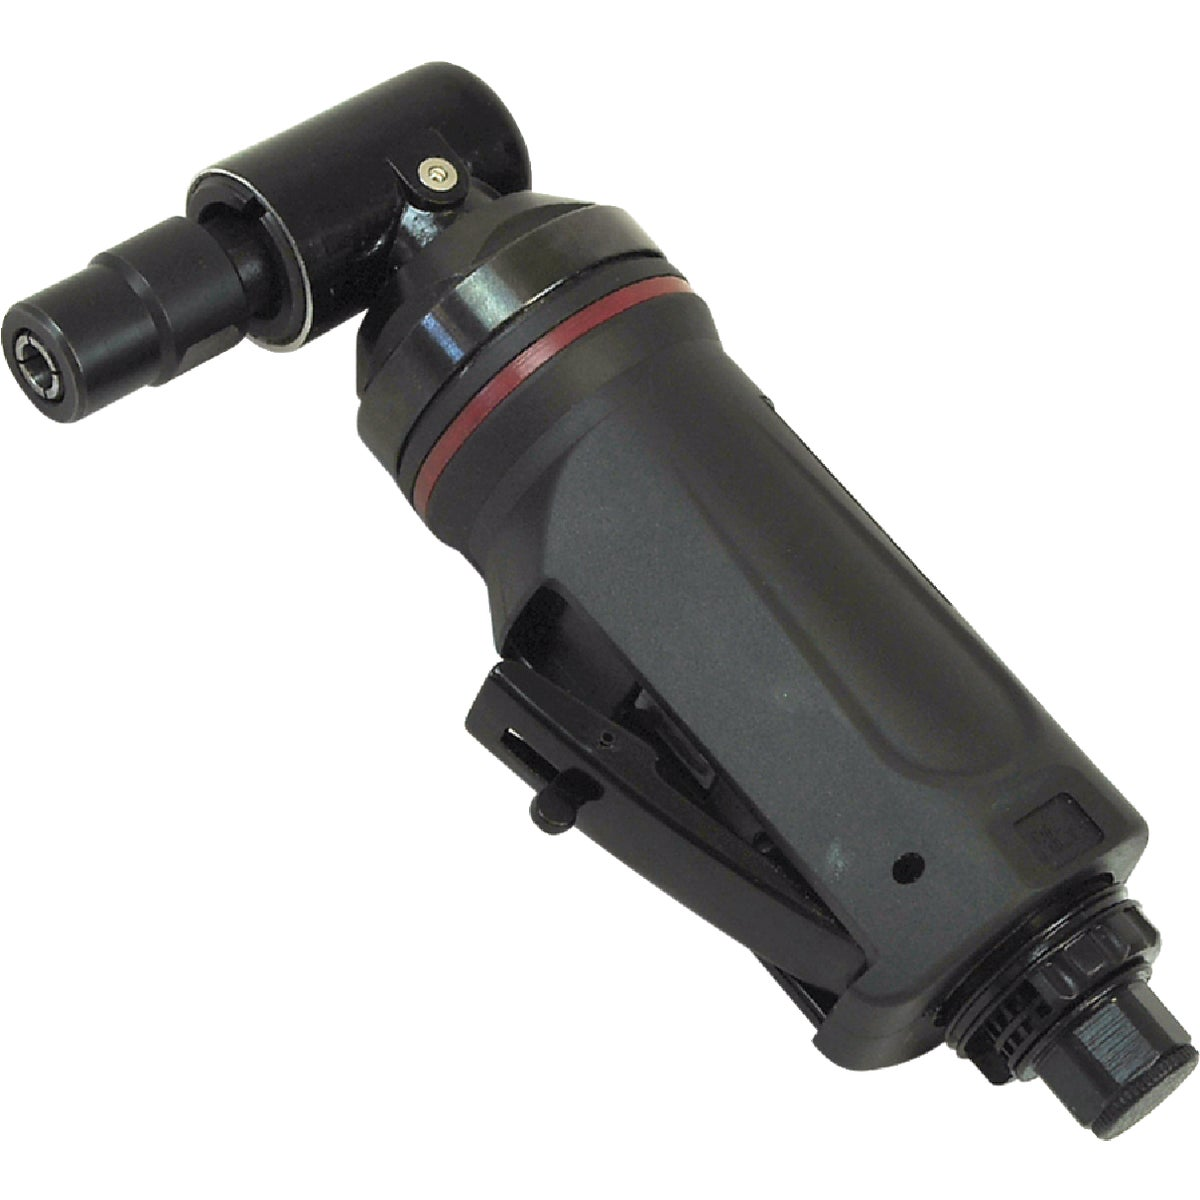 90 ANGLE DIE GRINDER - 6255 by Aircat Pneumatic Tools